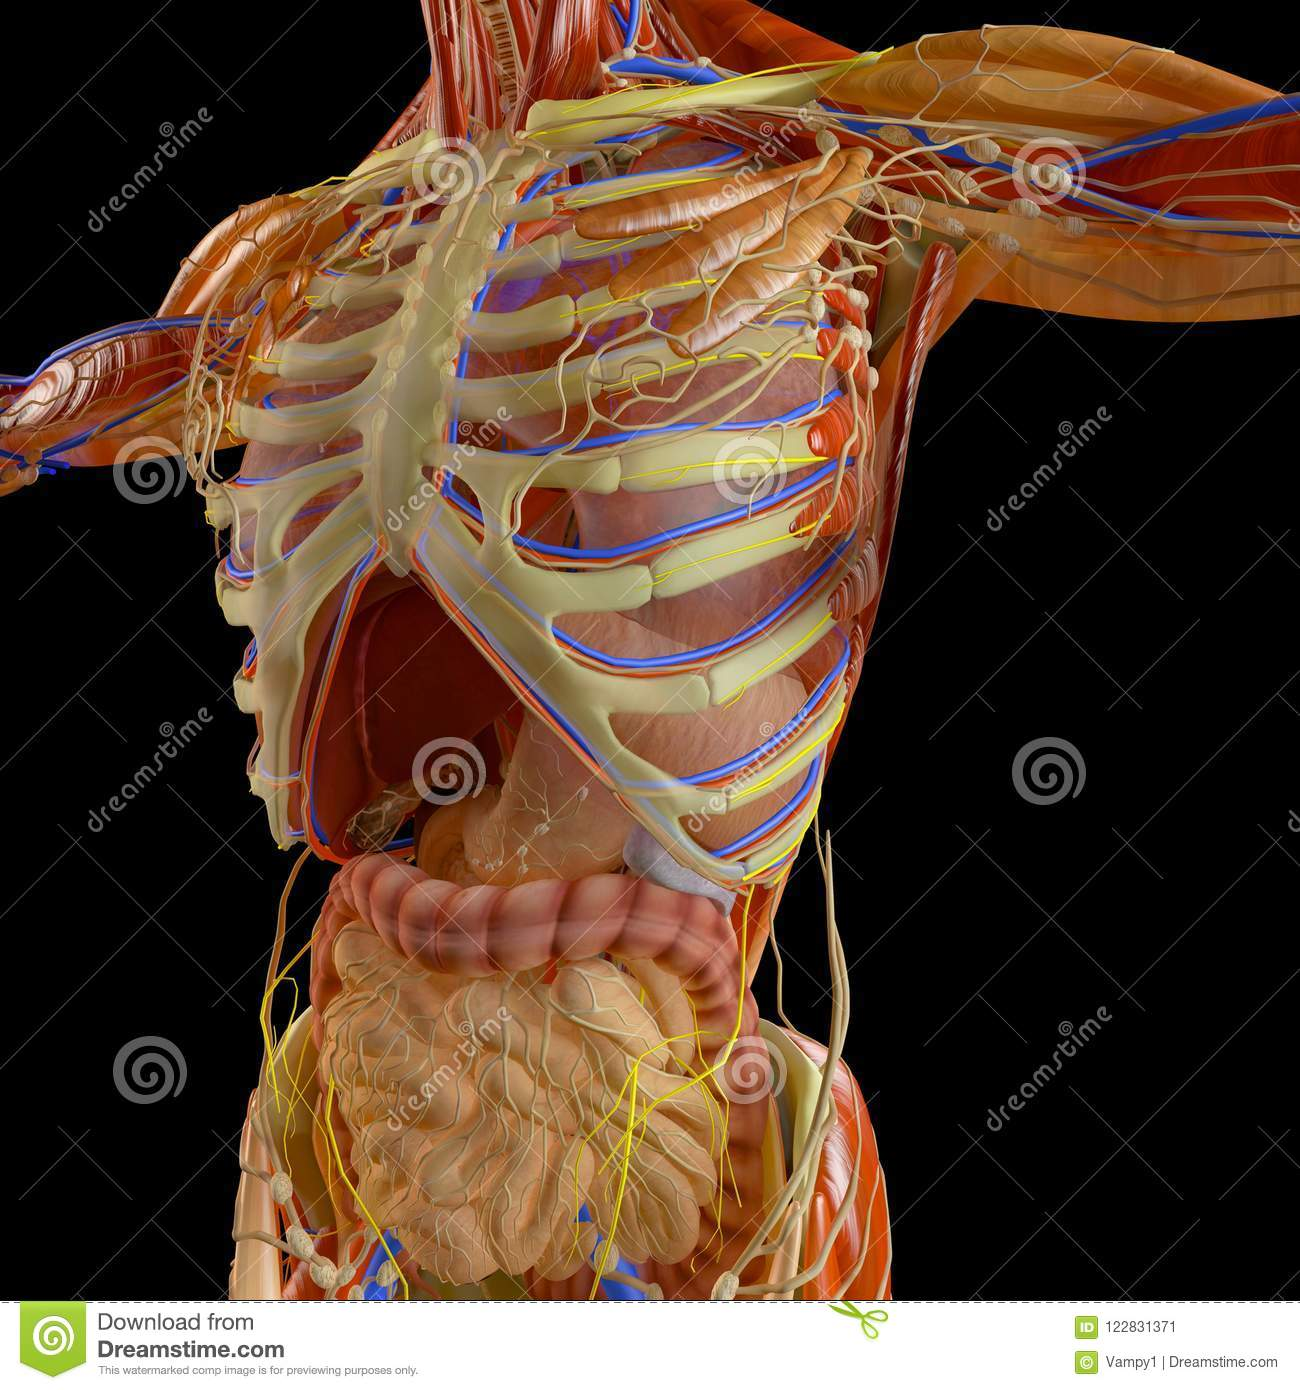 hight resolution of human body x ray view of the respiratory apparatus and digestive tract in the ribcage anatomy 3d rendering